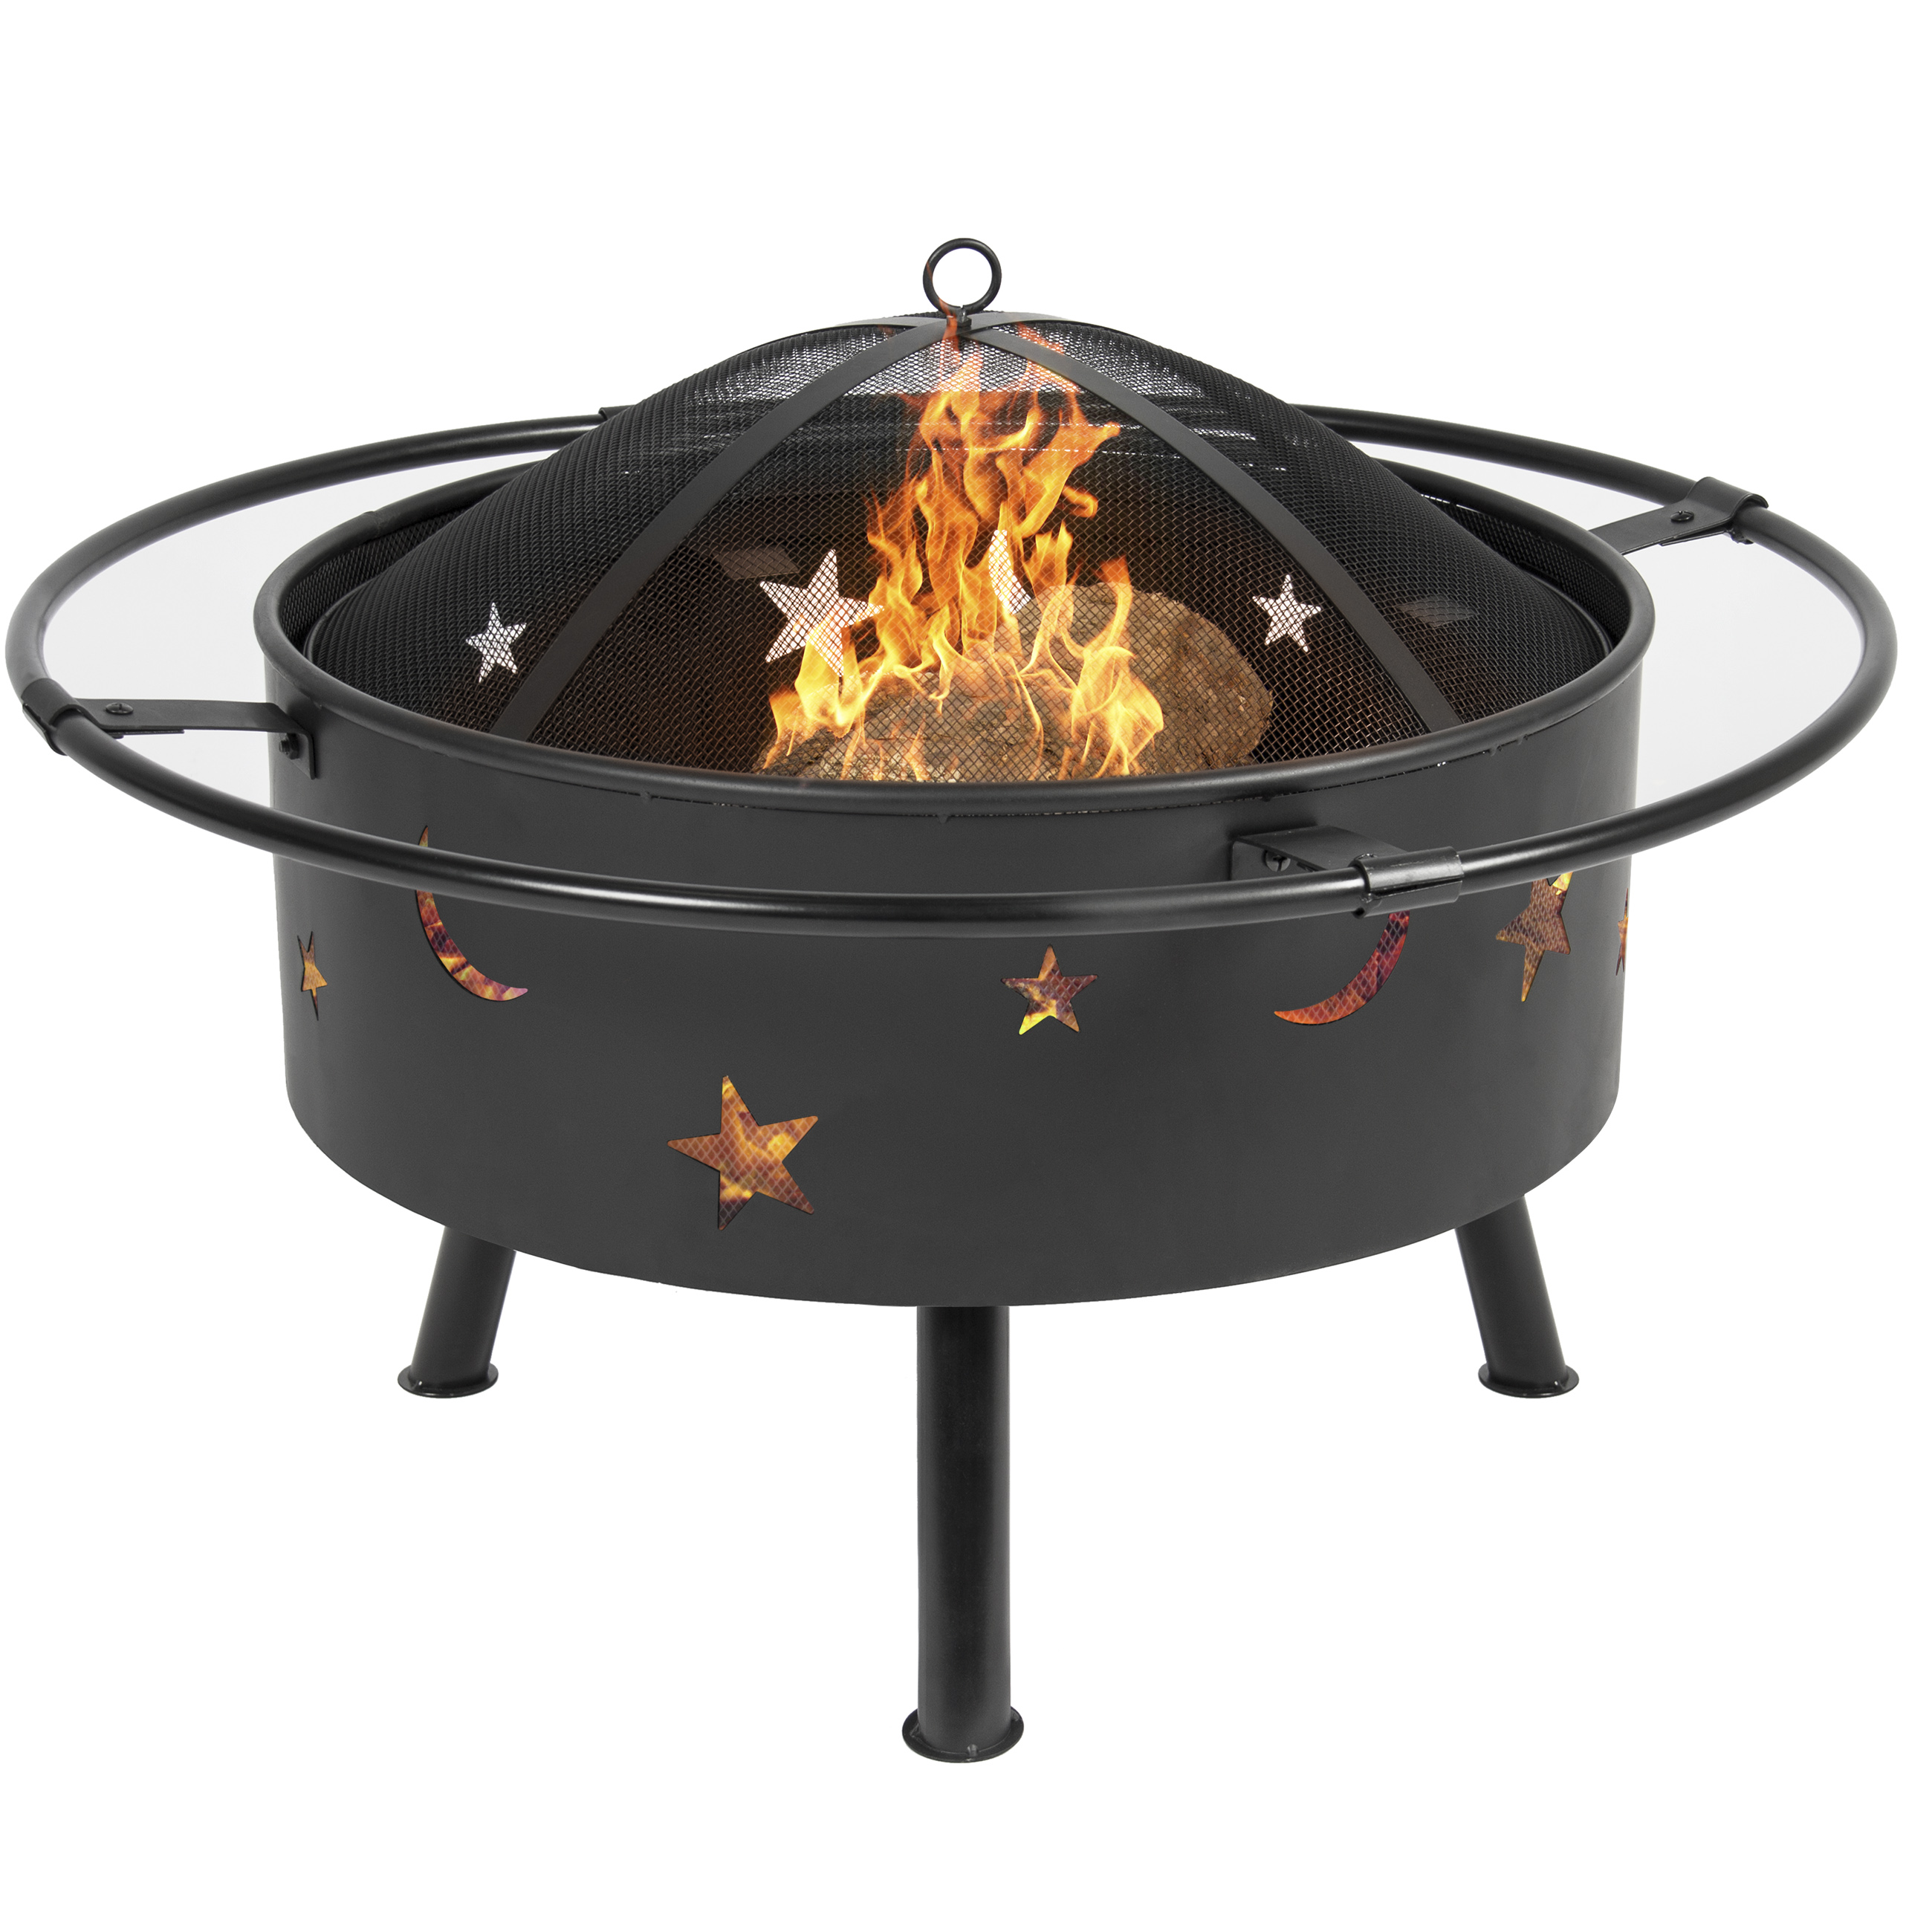 Best Choice Products 30in Outdoor Patio Fire Pit BBQ Grill Fire Bowl Fireplace w/ Star Design - Black